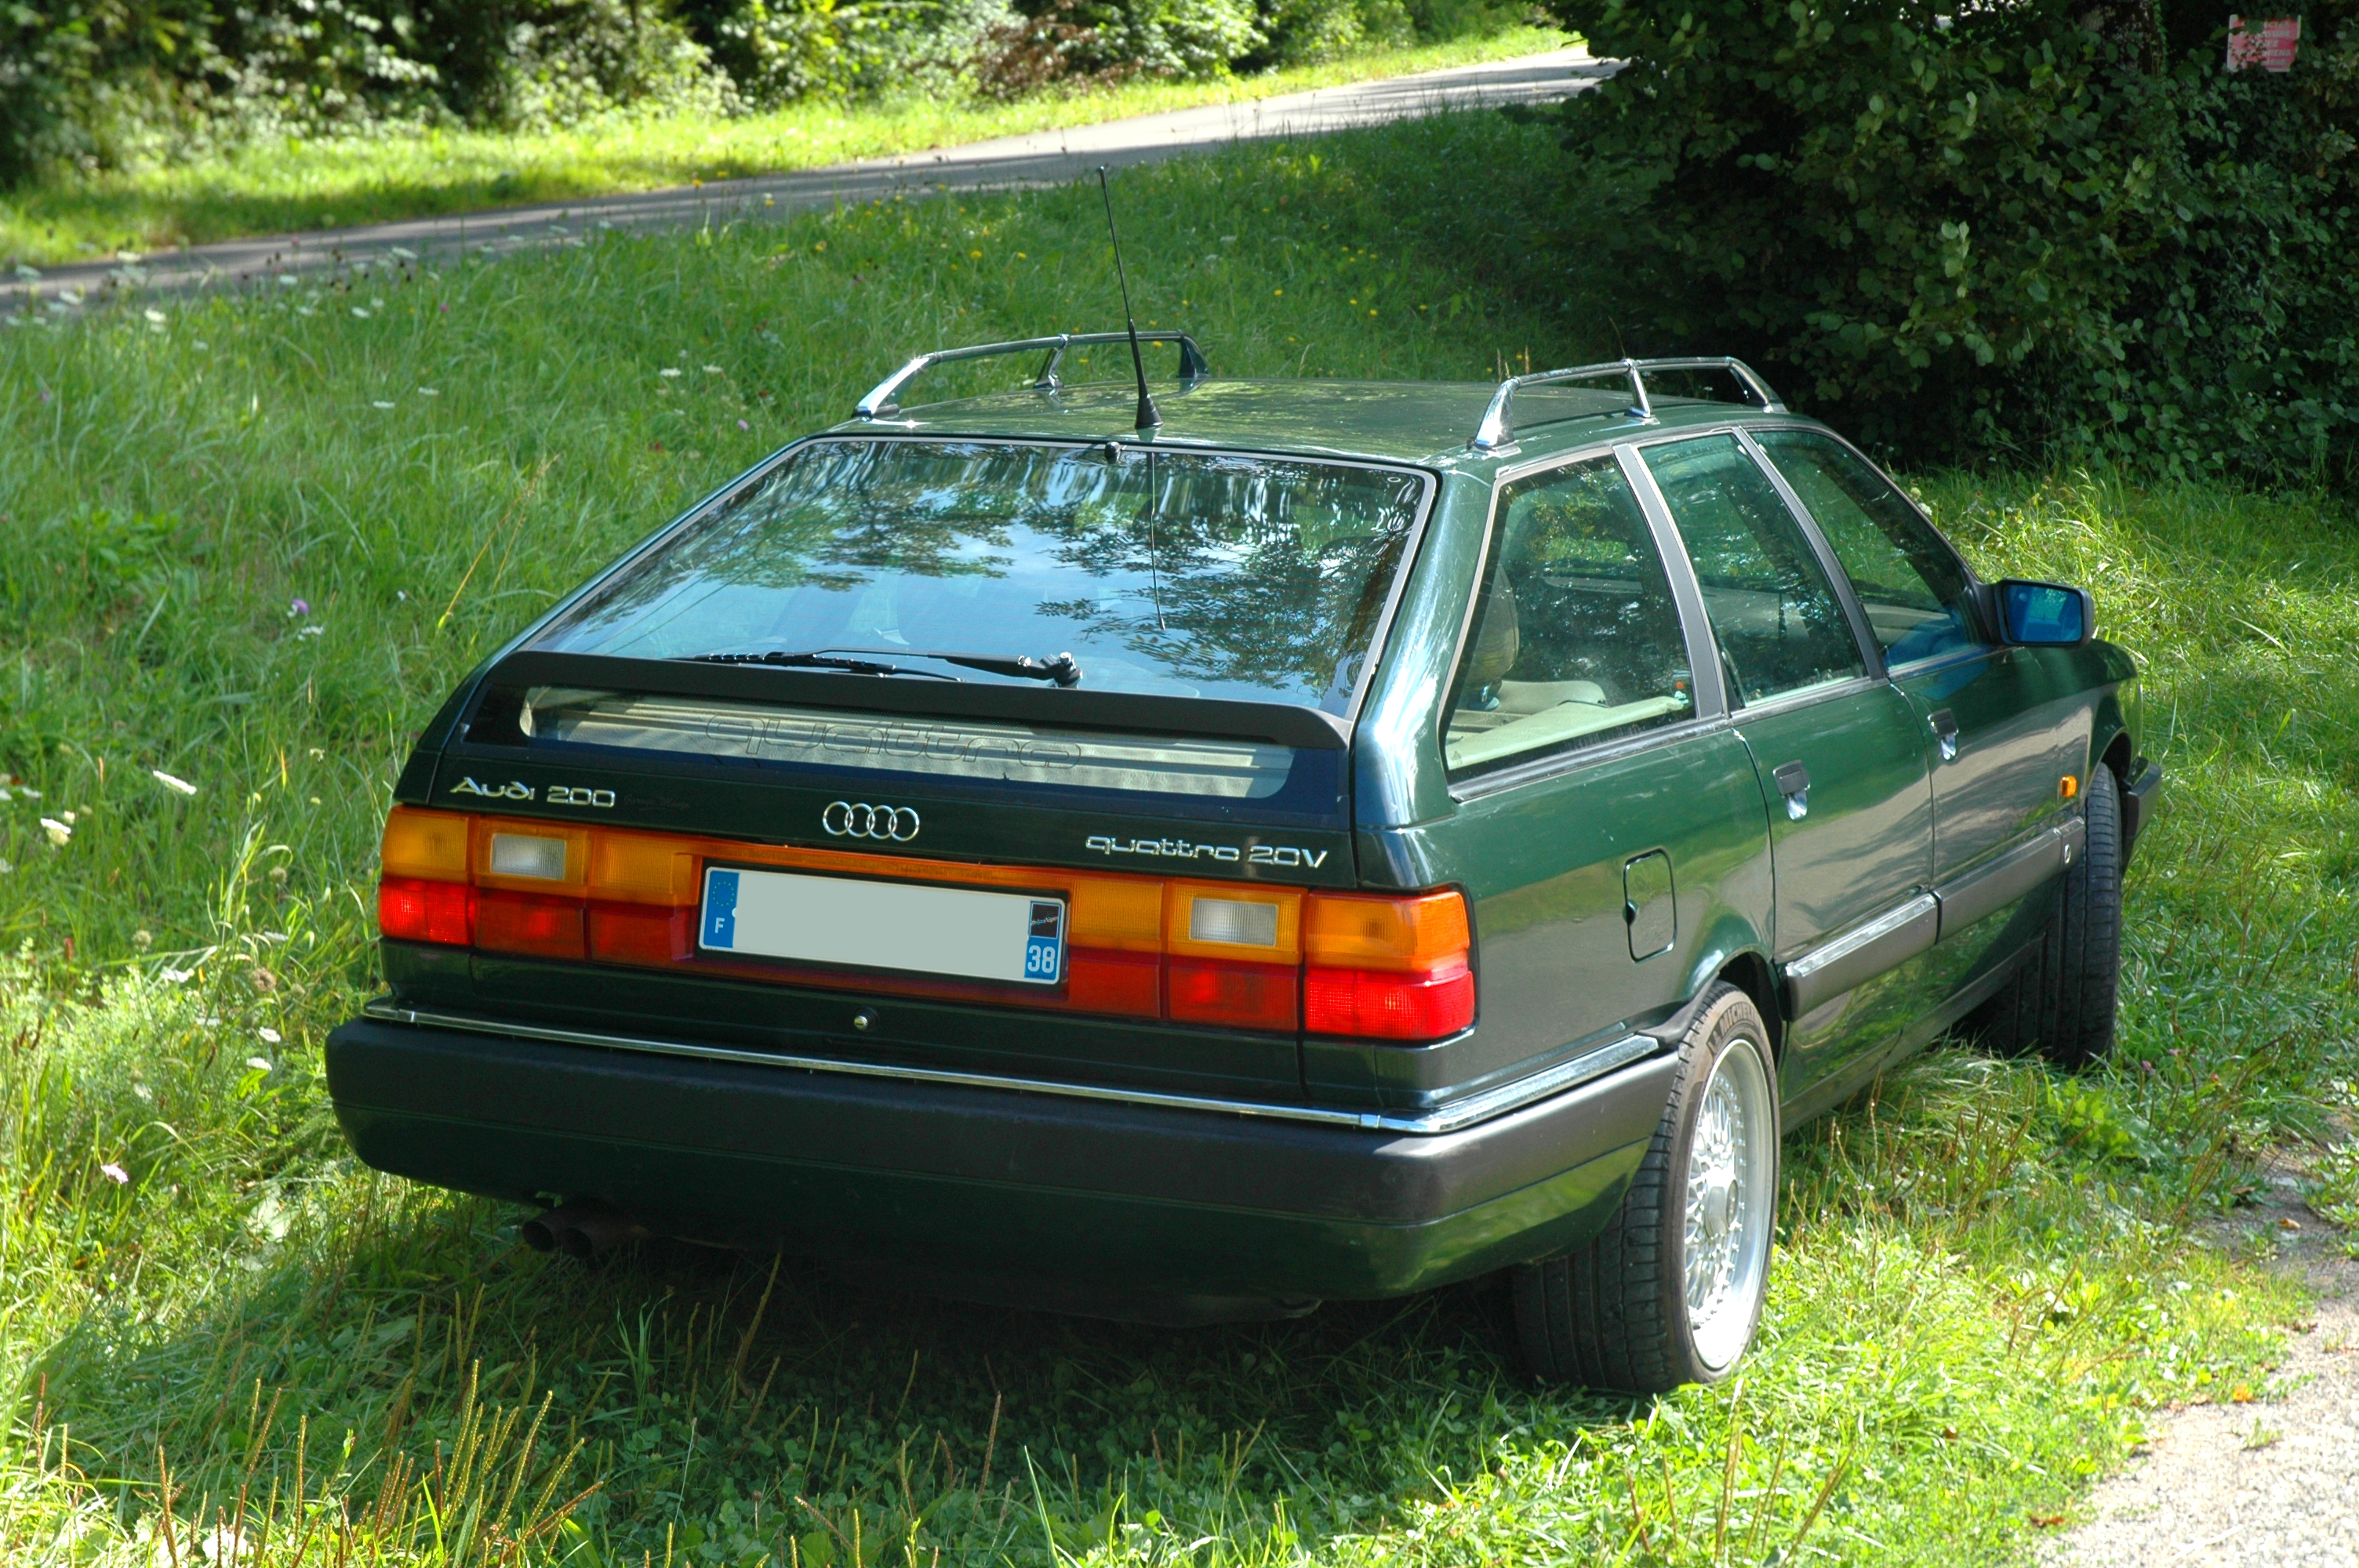 1991 audi 200 quattro turbo 20v avant. Black Bedroom Furniture Sets. Home Design Ideas